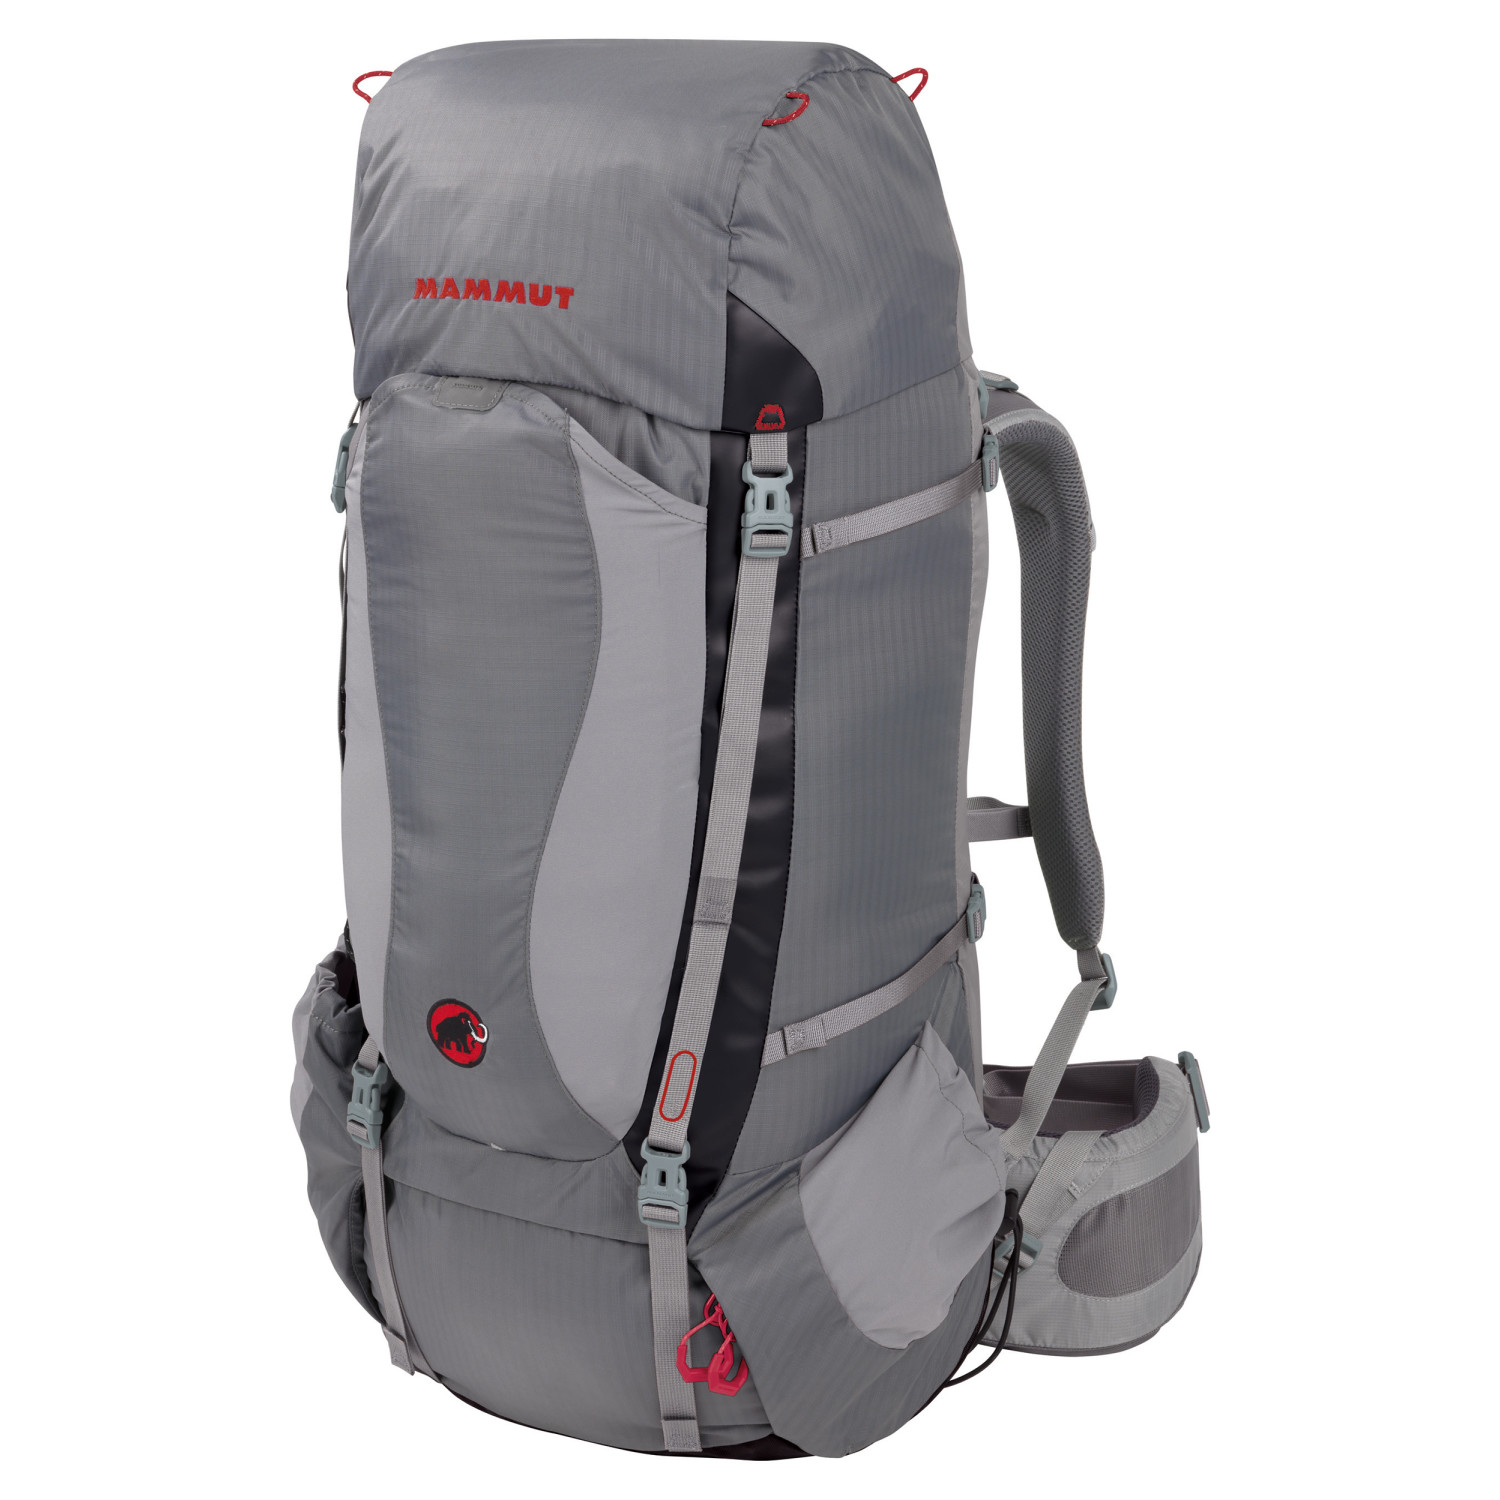 Mammut Heron Light 60+15